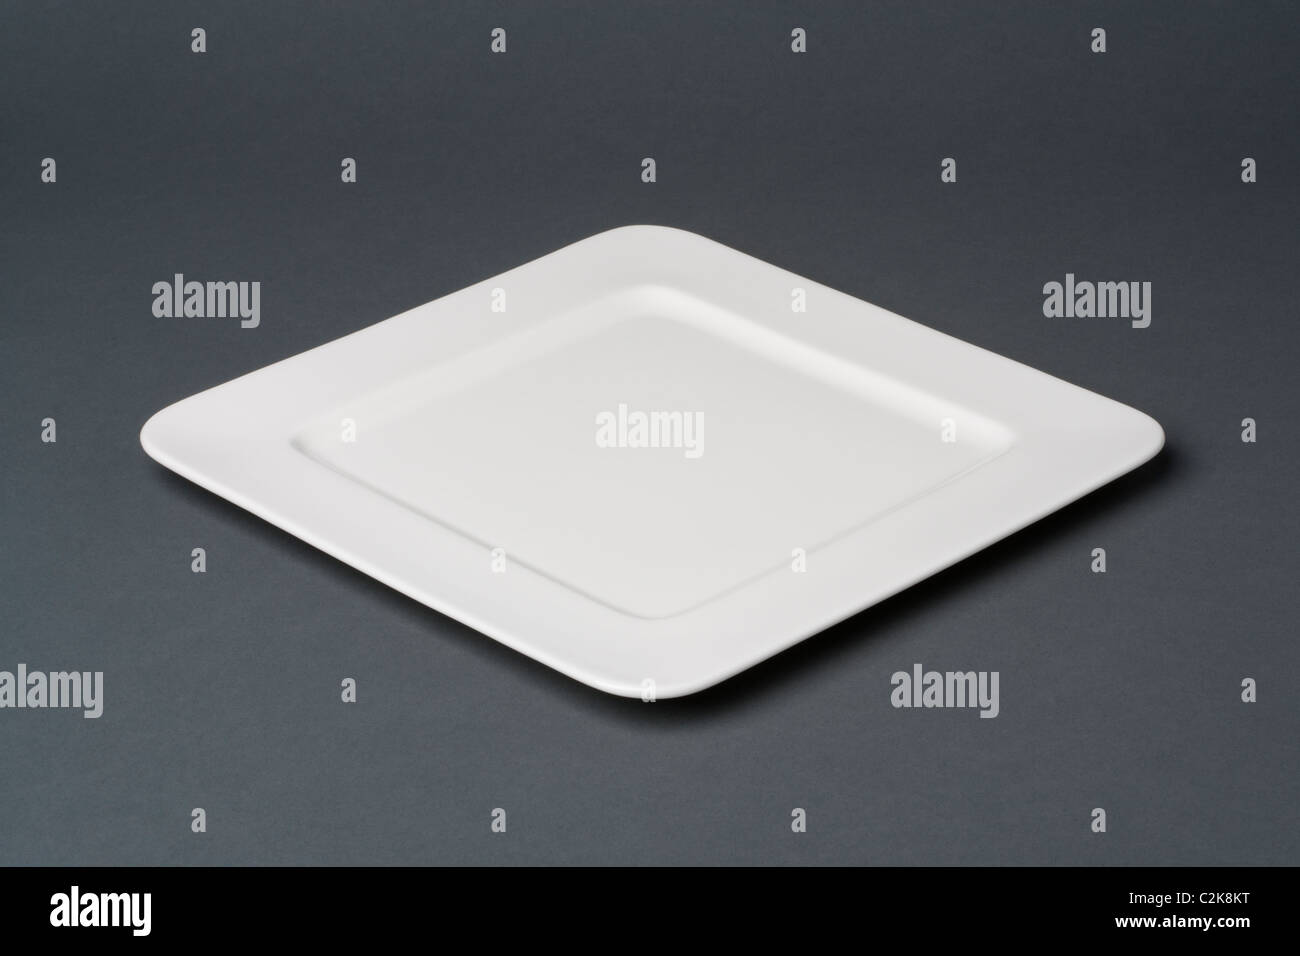 Square white dinner plate on a grey background - Stock Image